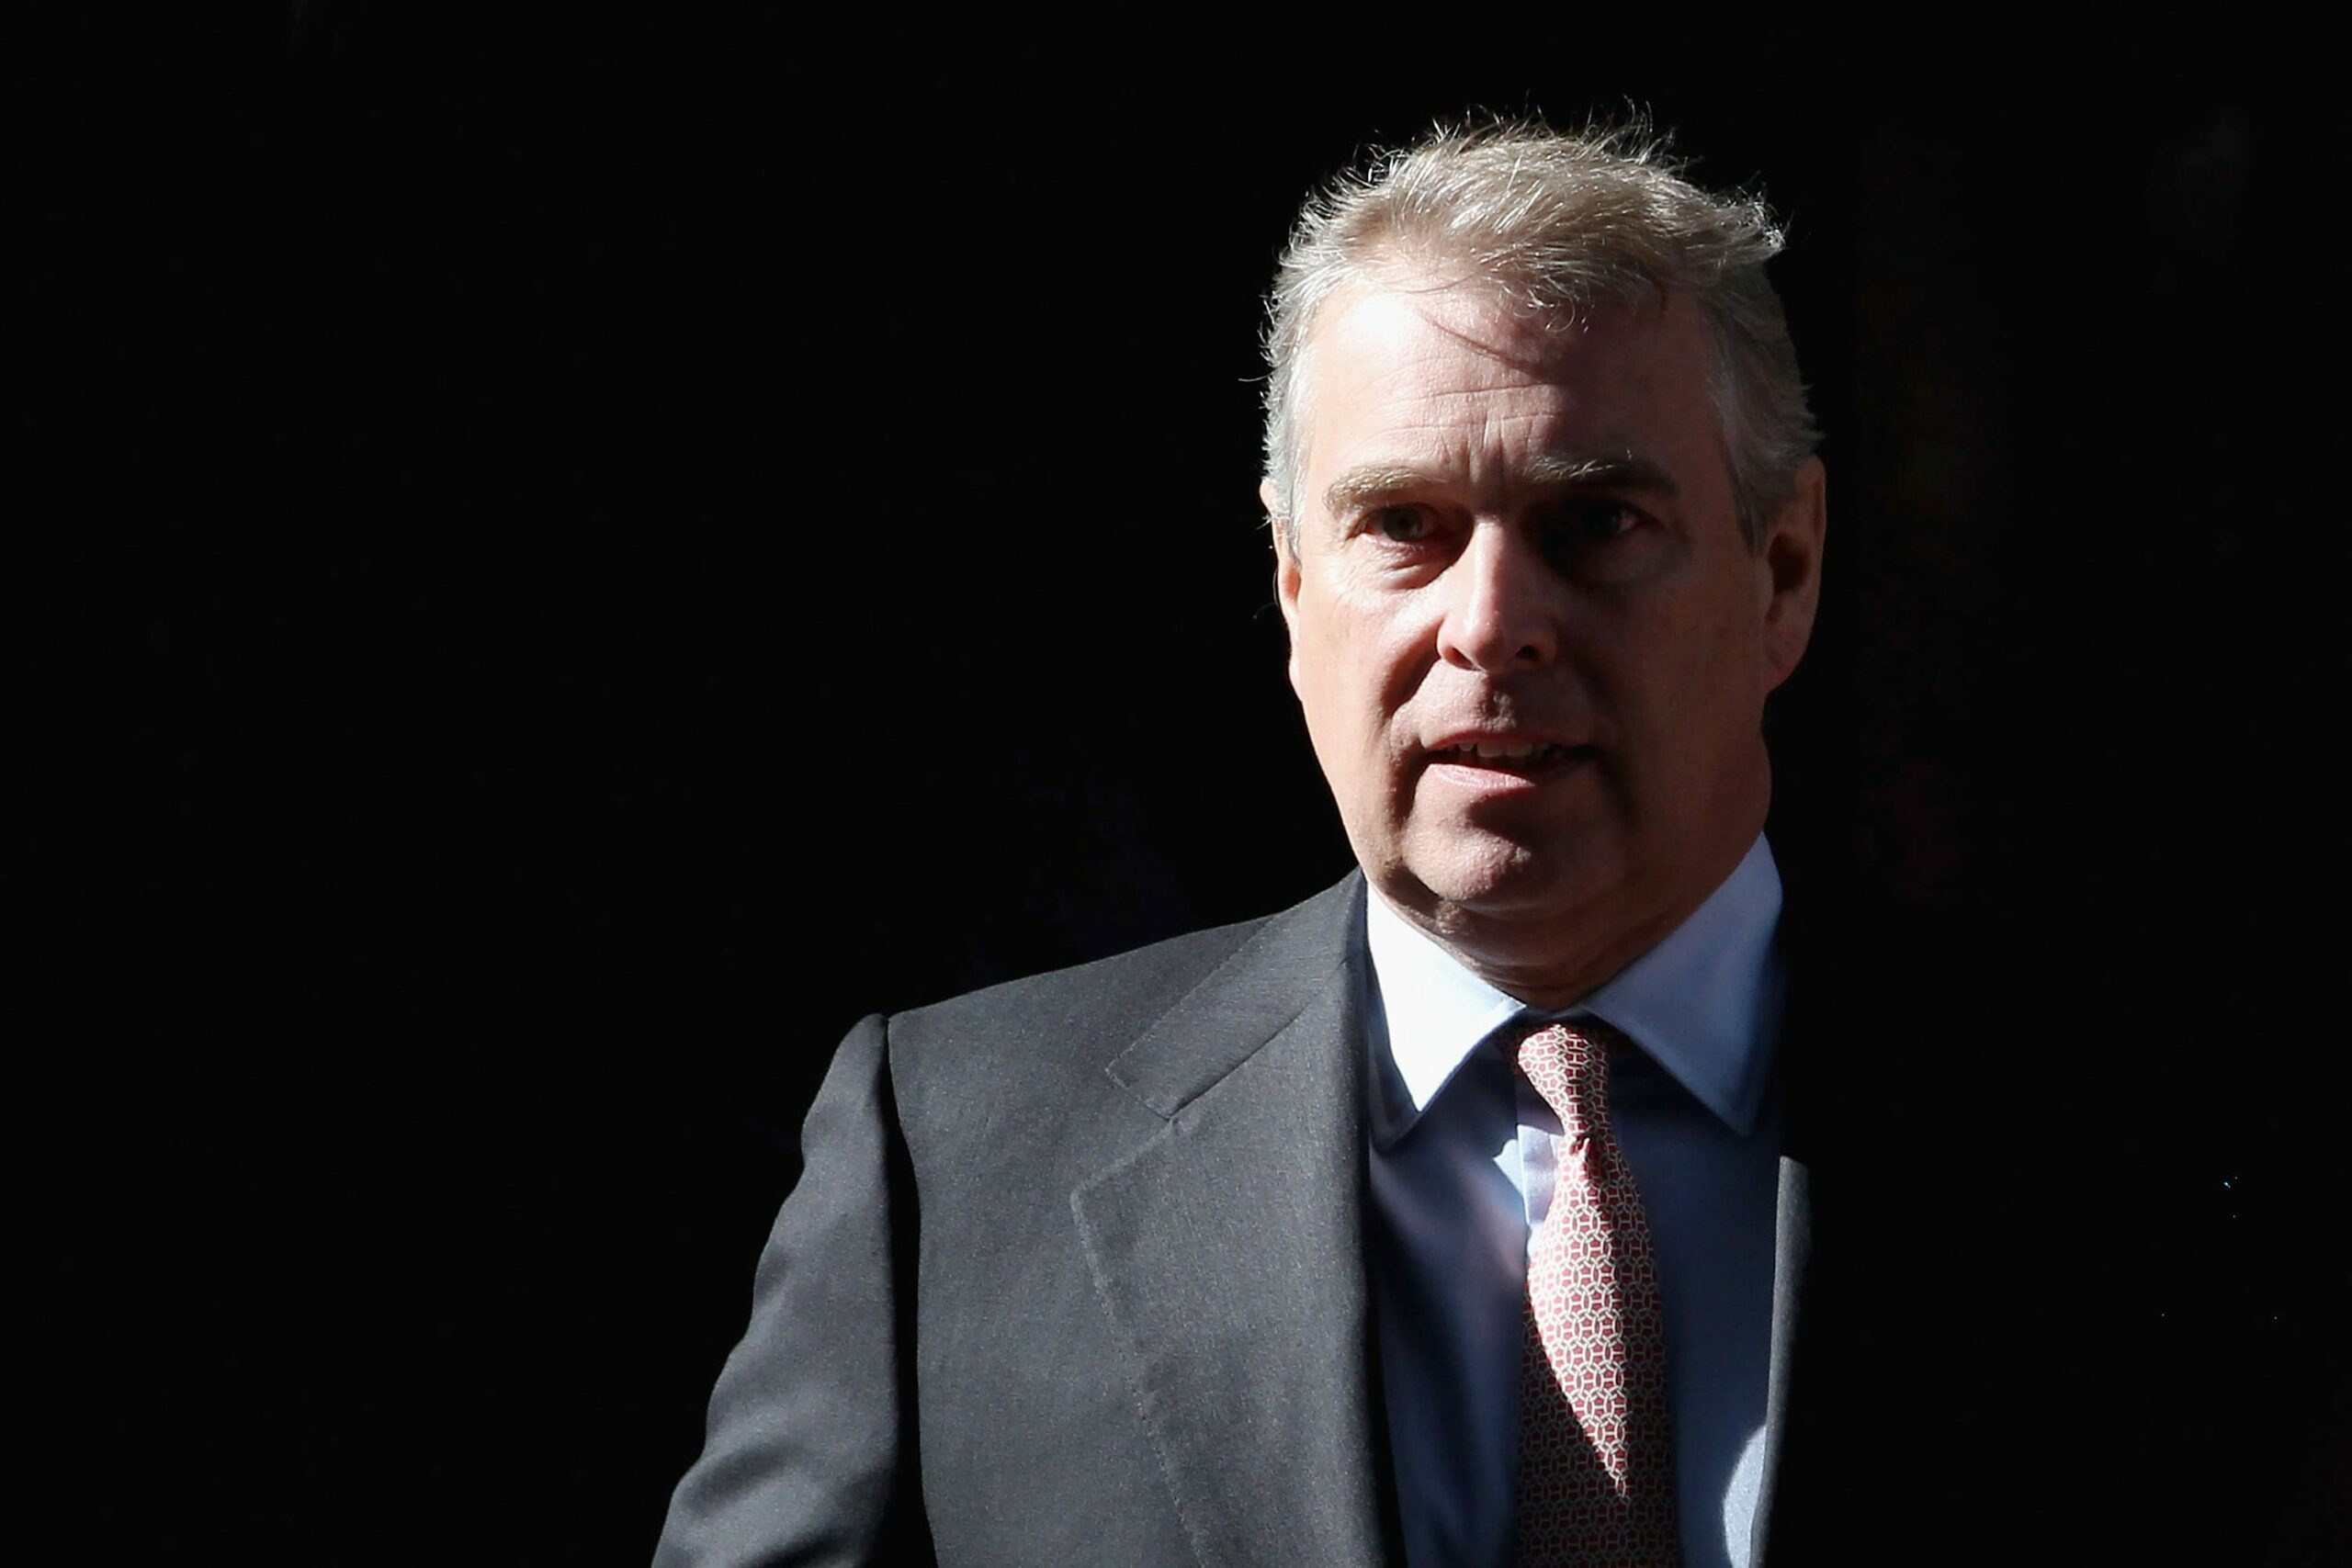 Prince Andrew lawyer questions lawsuit by Jeffrey Epstein accuser